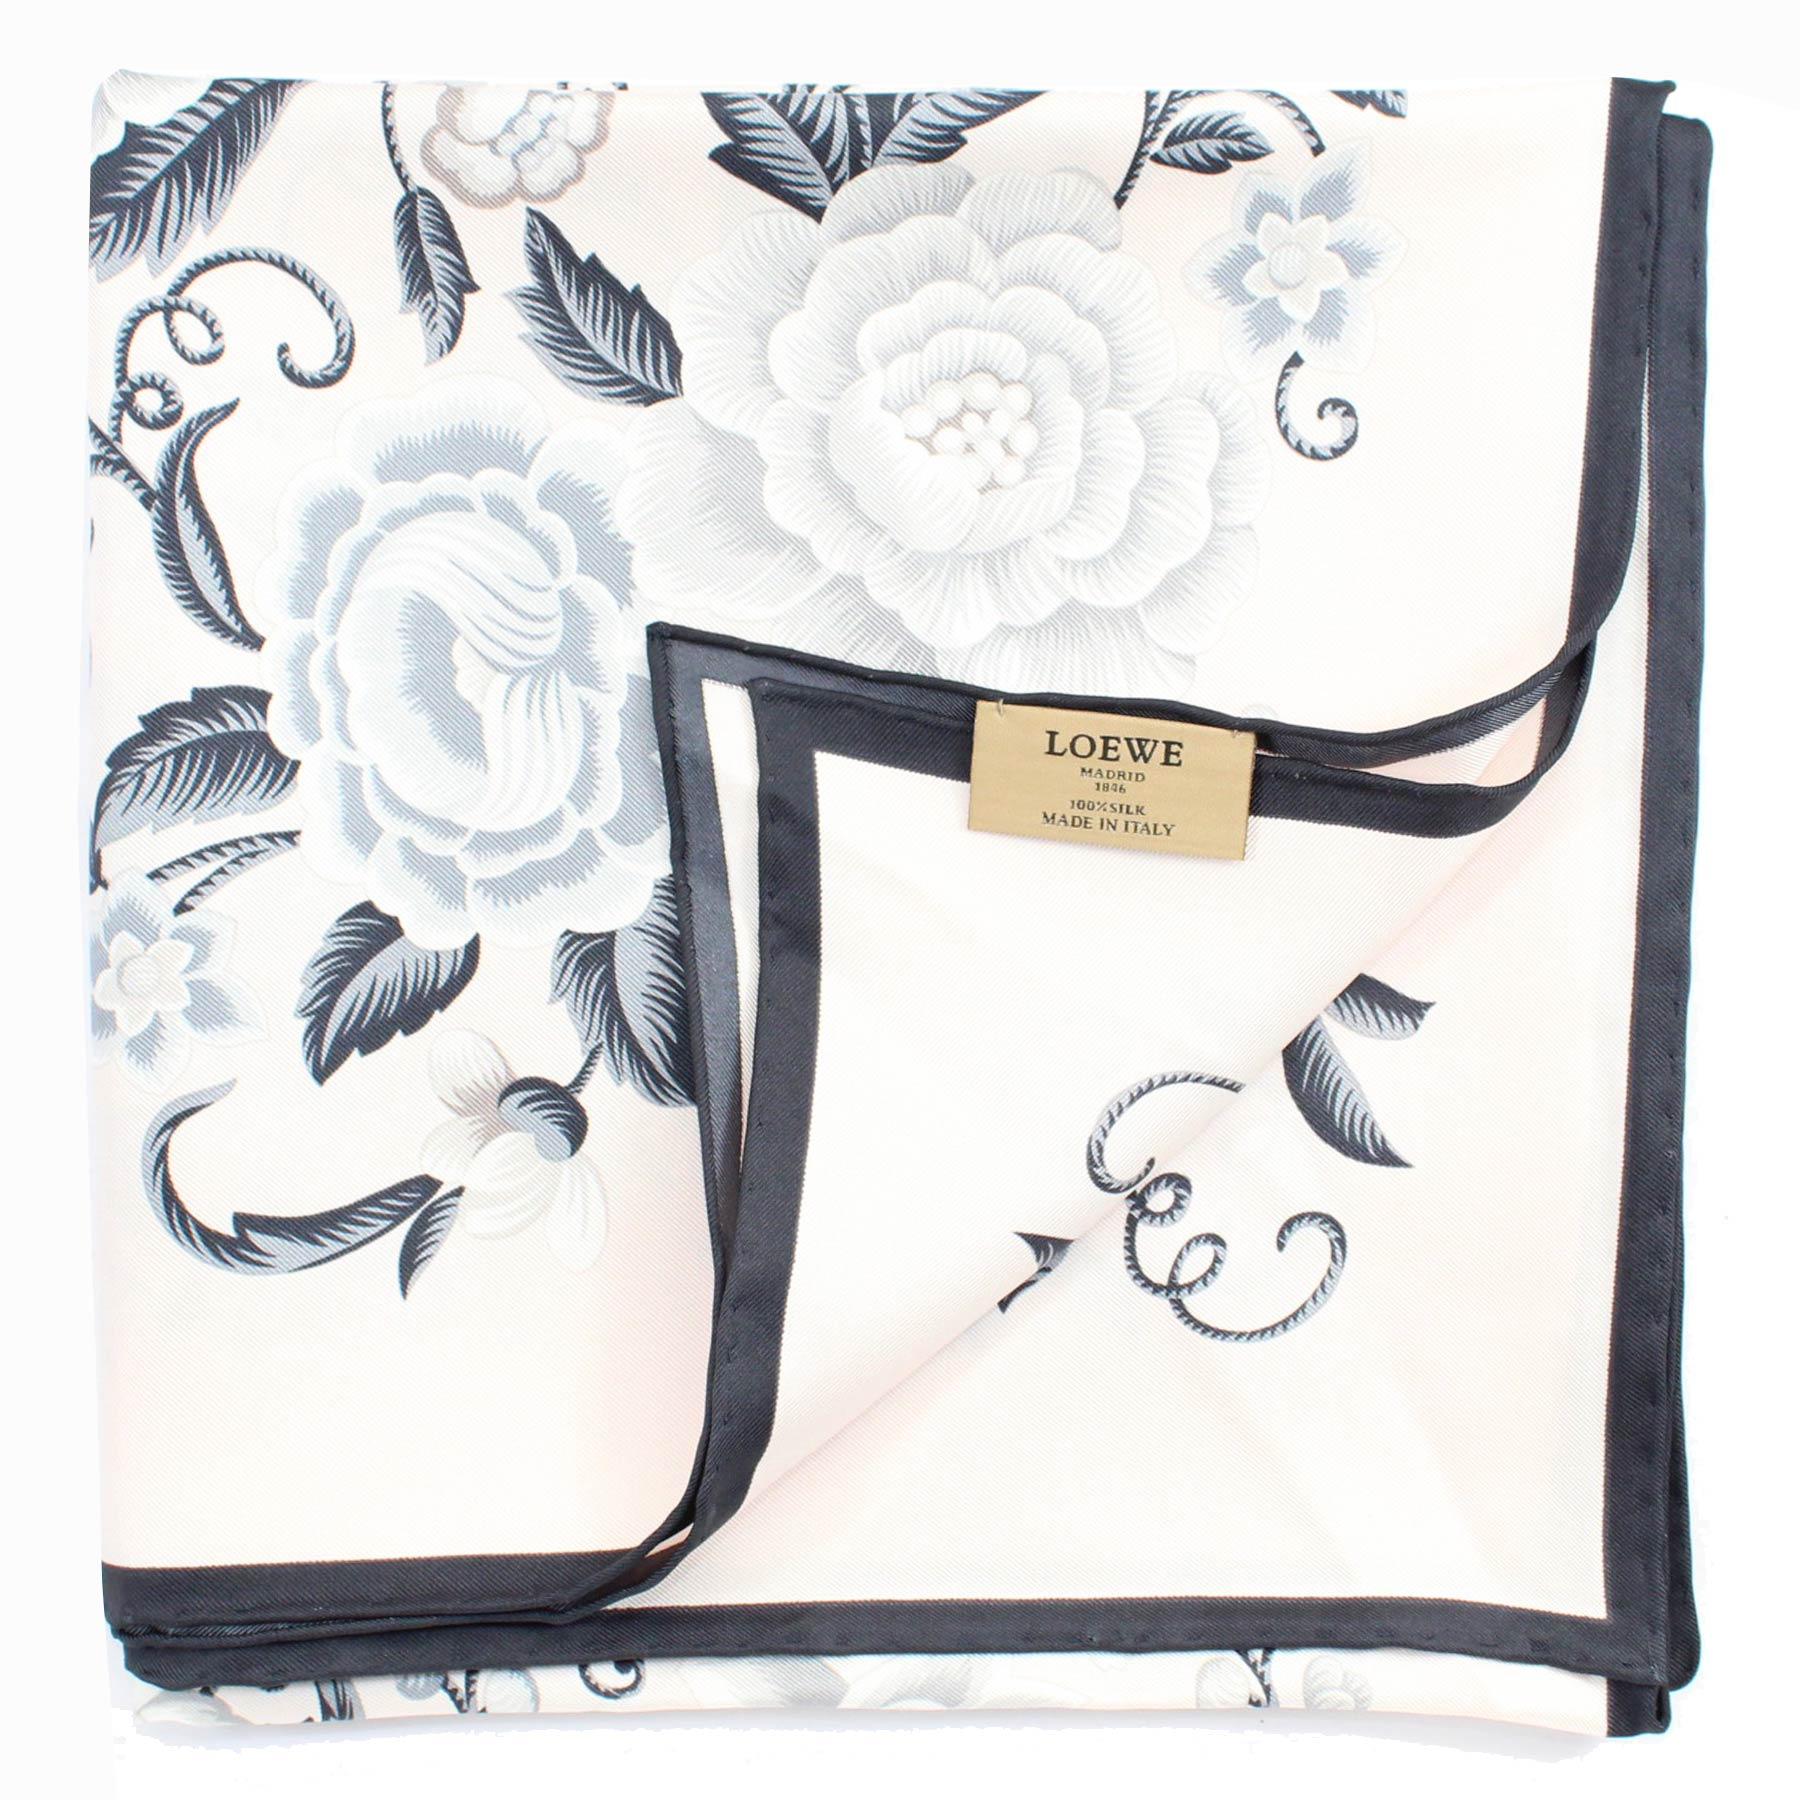 Loewe Silk Scarf Light Pink Gray Black Floral - Large Square Scarf SALE